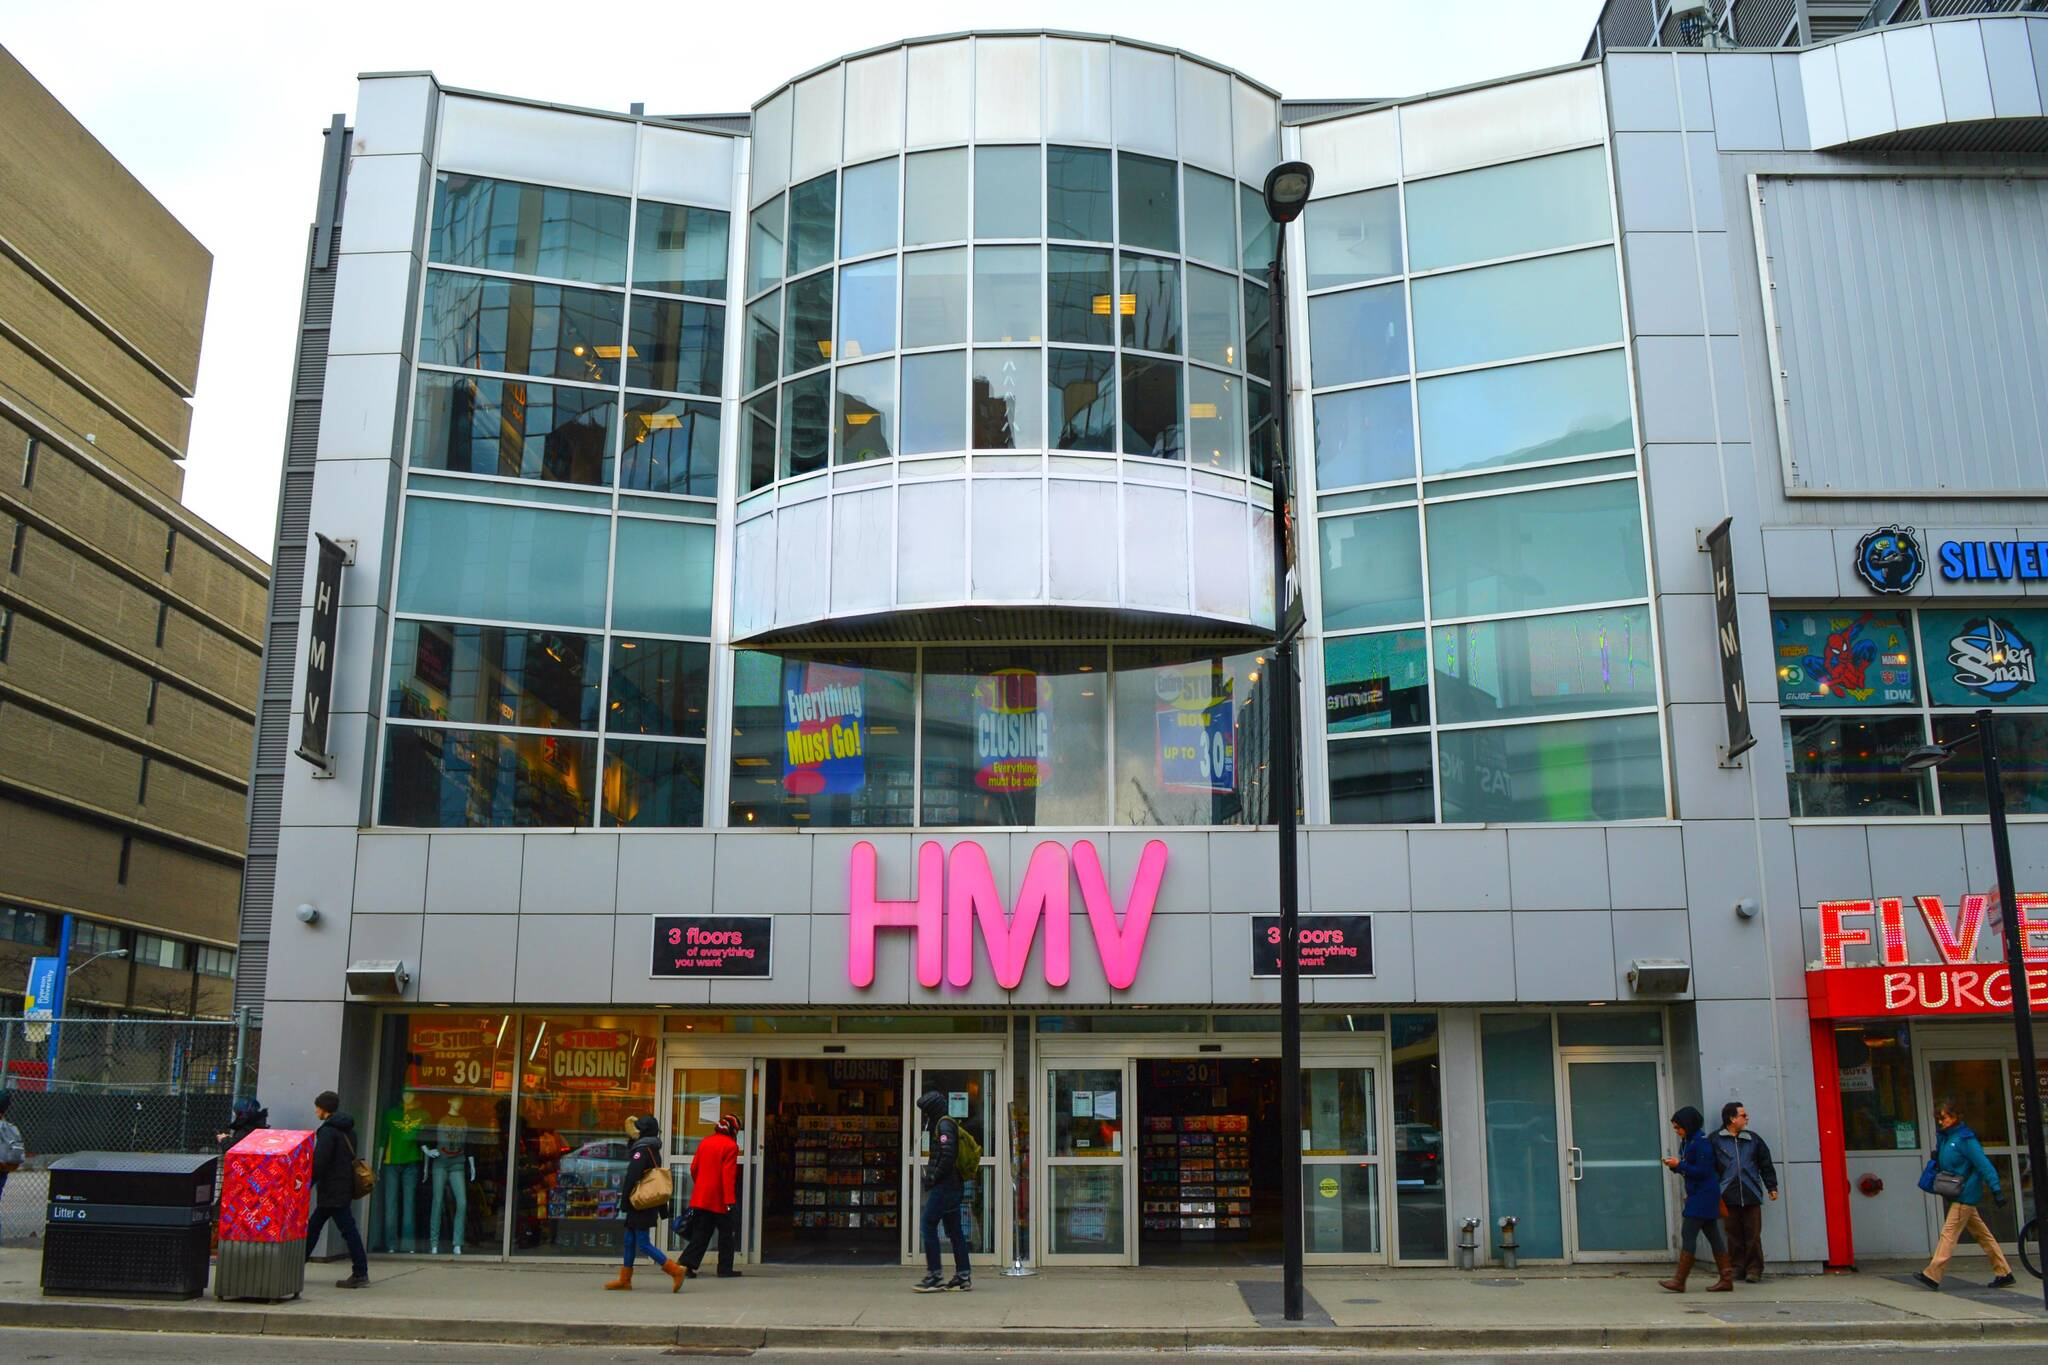 The Former Hmv On Yonge Is Turning Into A Cannabis Dispensary